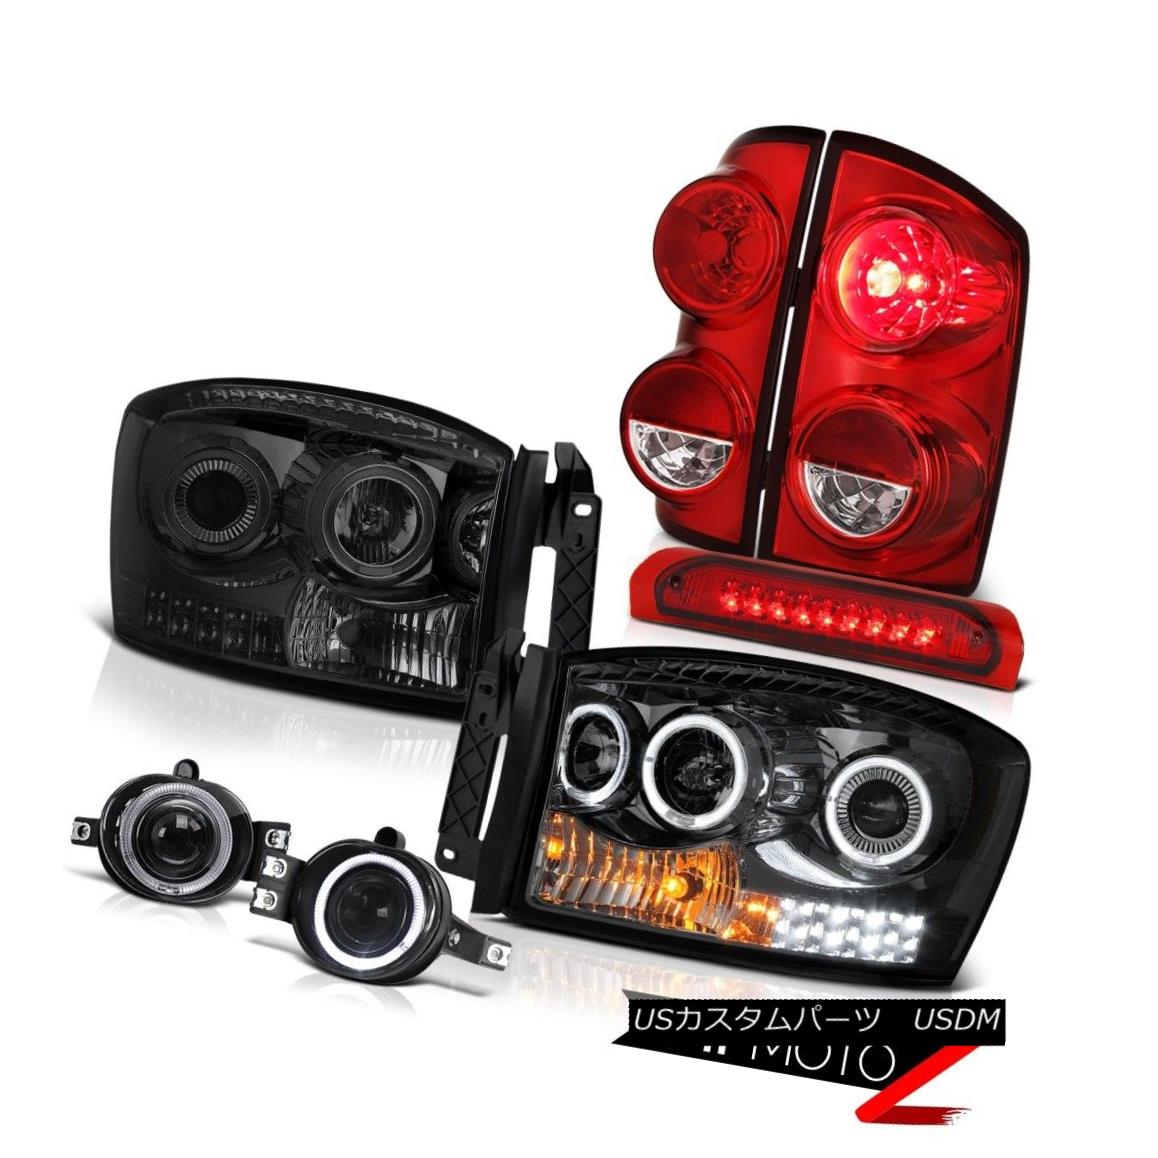 テールライト 2007-2009 Dodge Ram 3500 WS Tail Brake Lights Headlamps Fog Roof Light Halo Rim 2007-2009 Dodge Ram 3500 WSテールブレーキライトヘッドランプフォグルーフライトHalo Rim